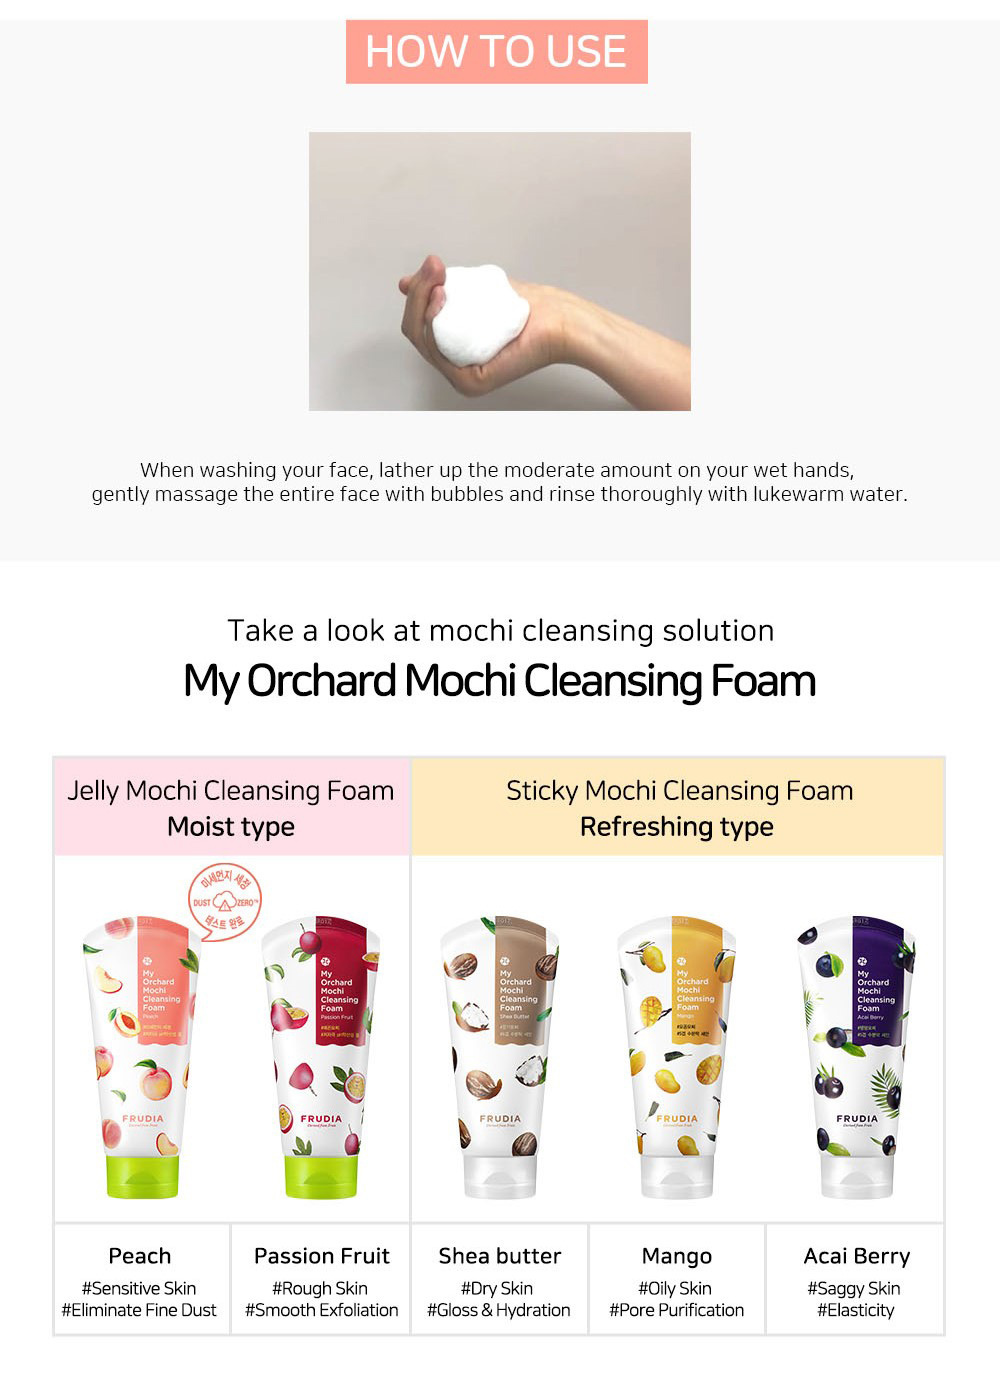 My Orchard Cleansing Foam #Peach-7